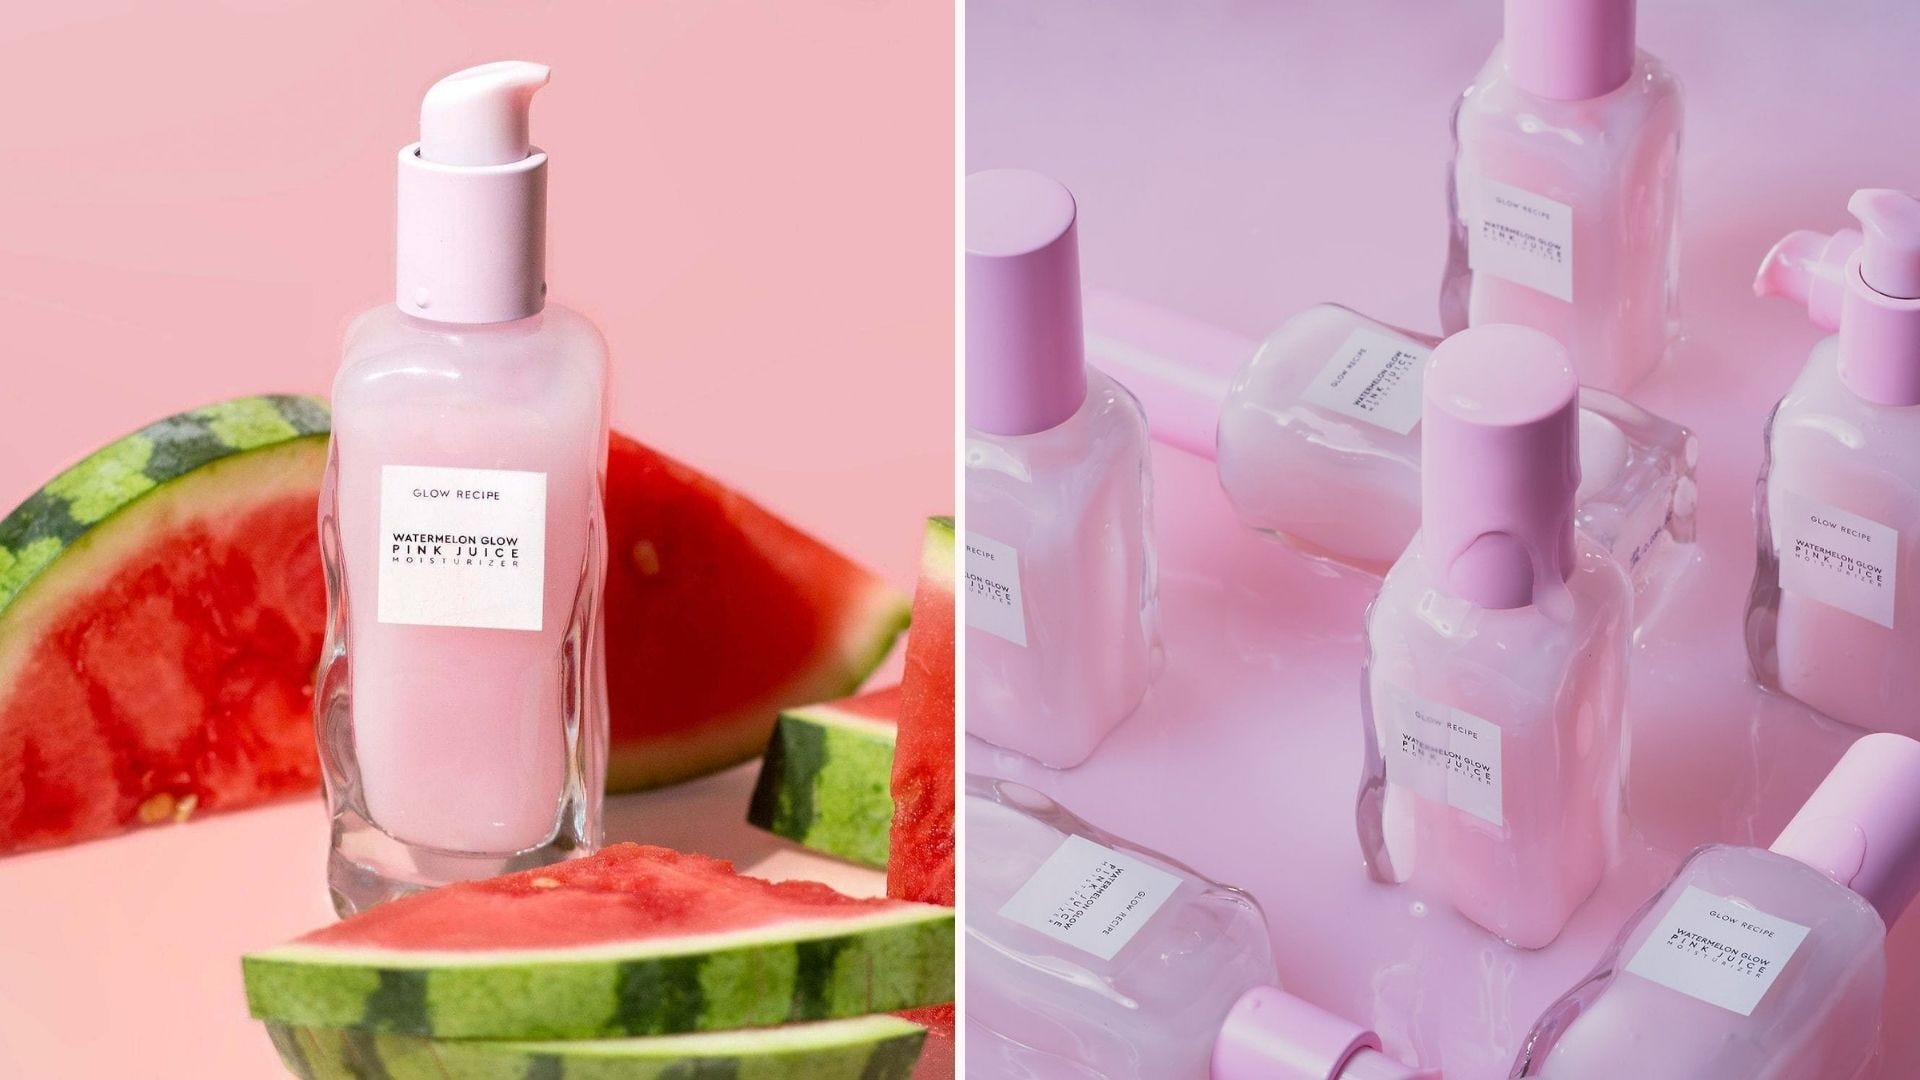 A pink bottle of moisturizer next to watermelon slices; several pink bottles arranged in rows